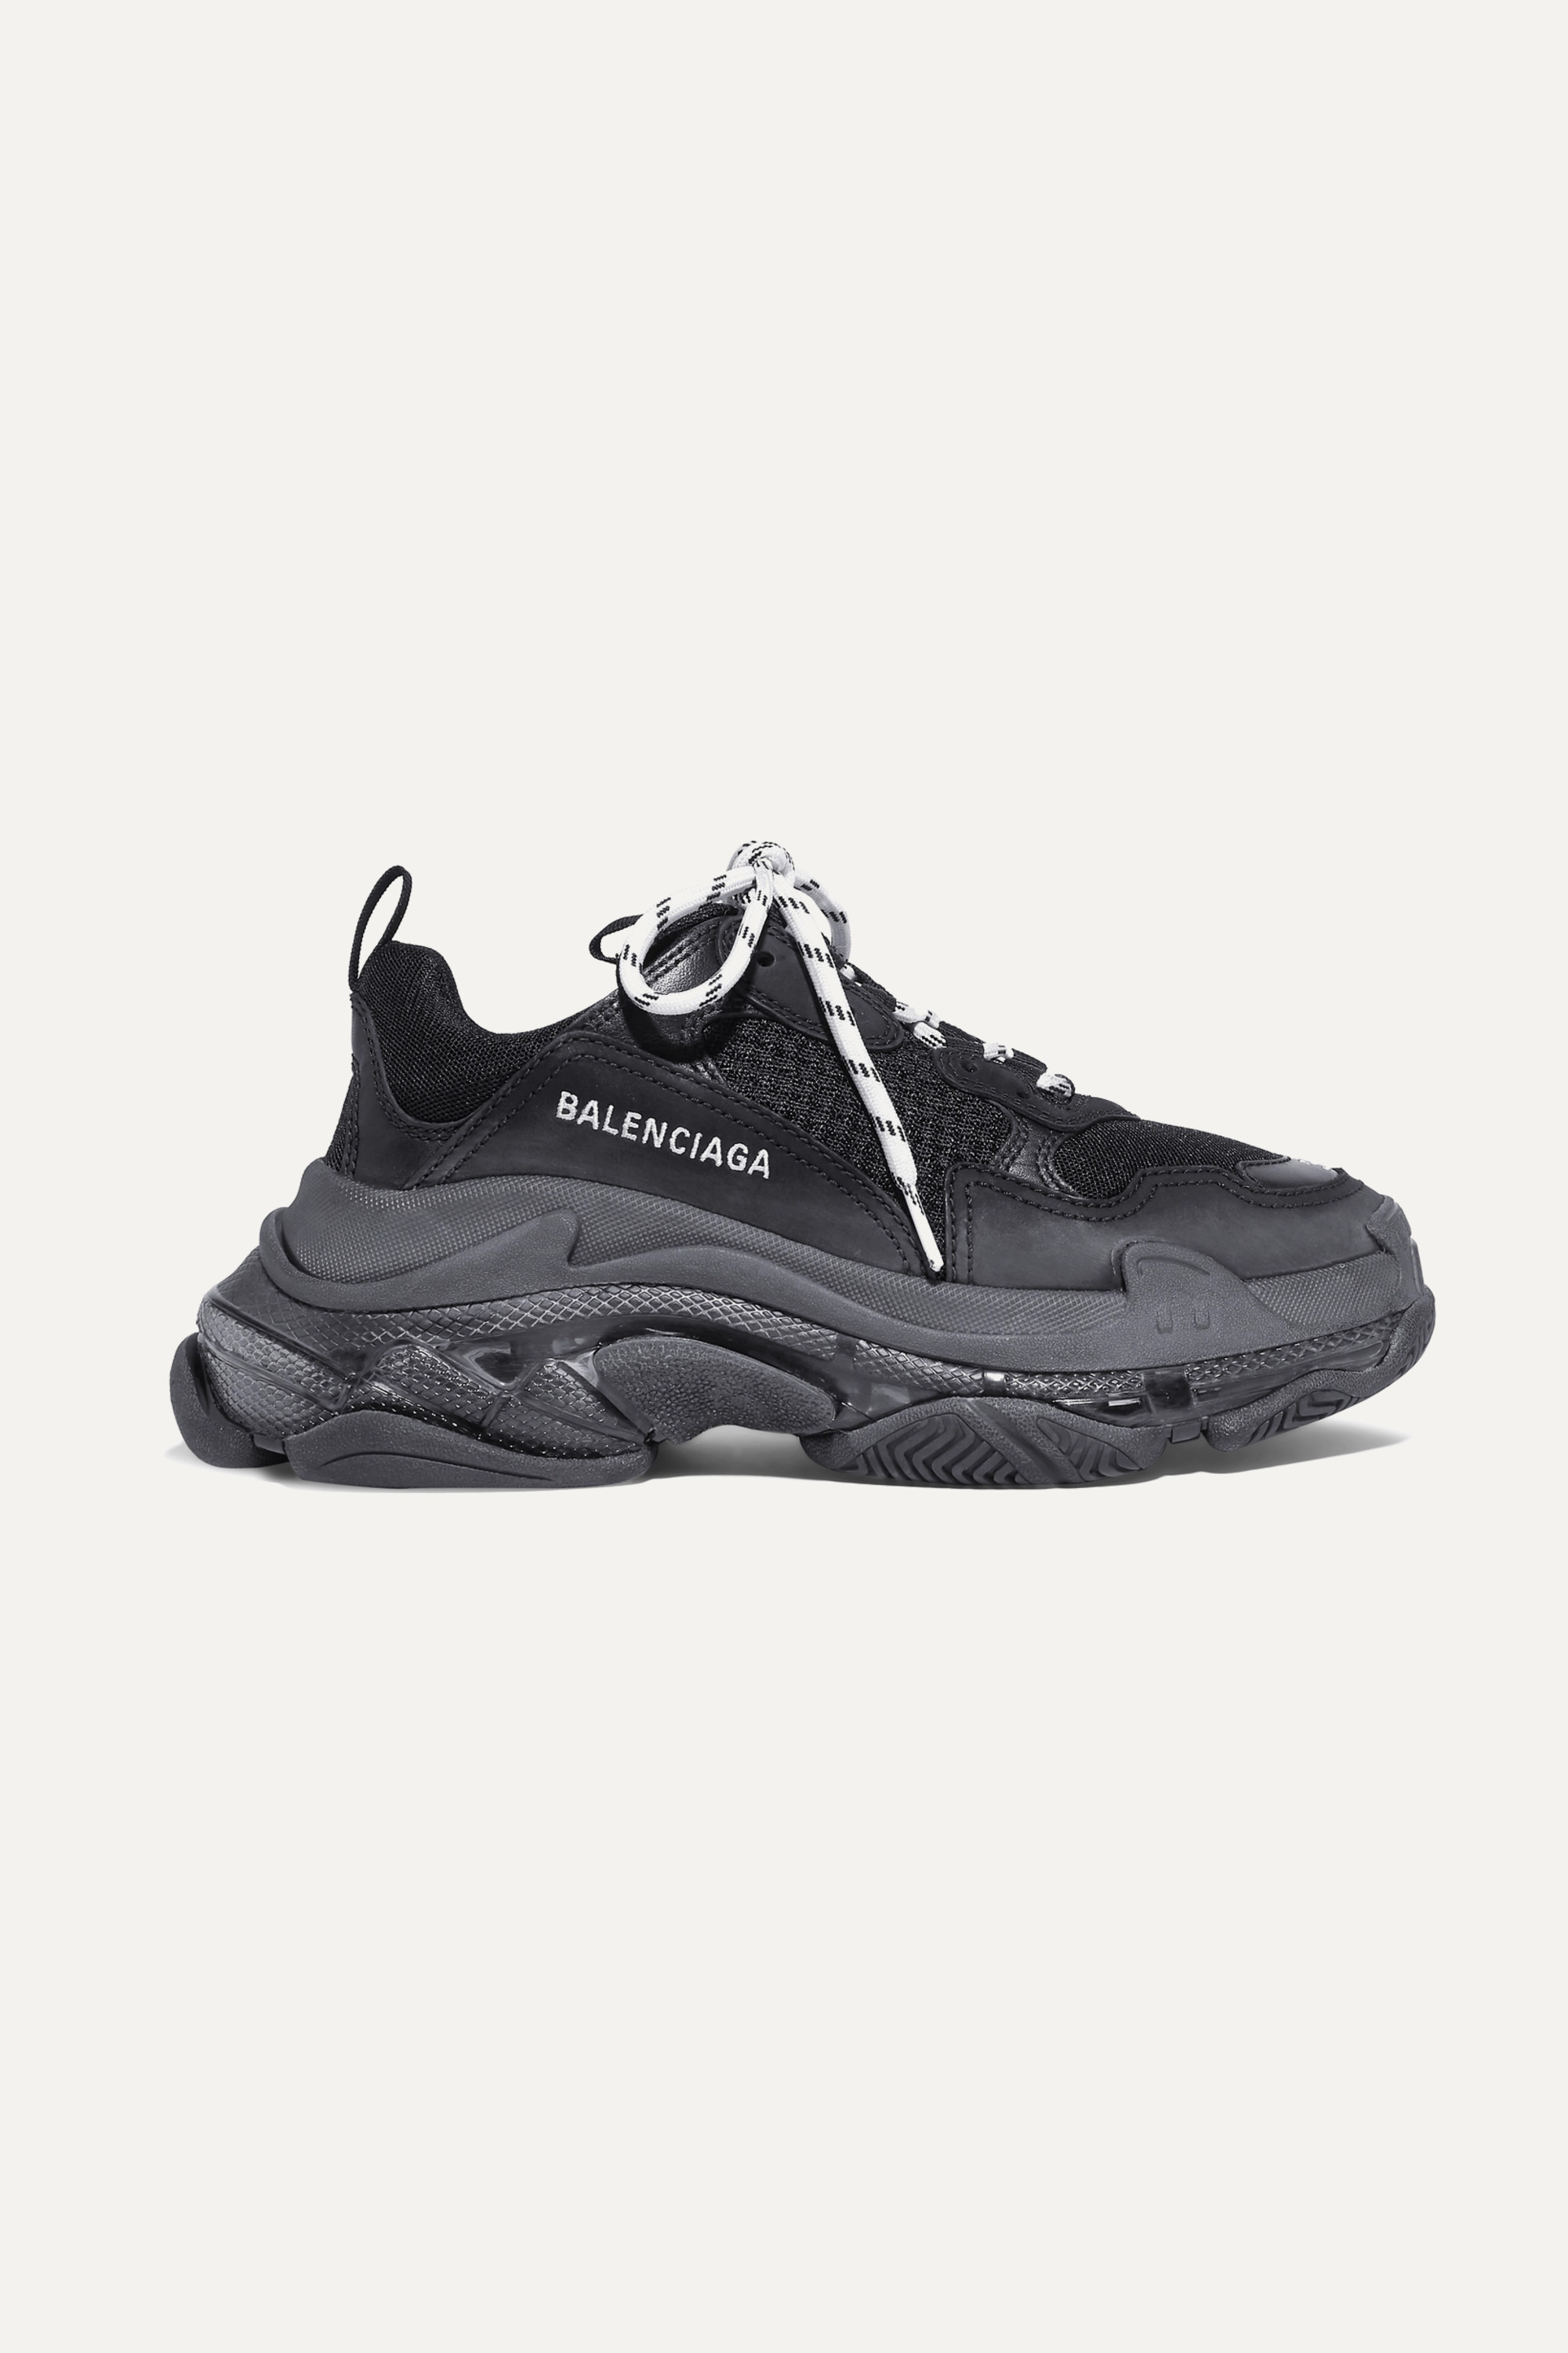 NEWS EBA Balenciaga Triple S 2 0 Batman Black